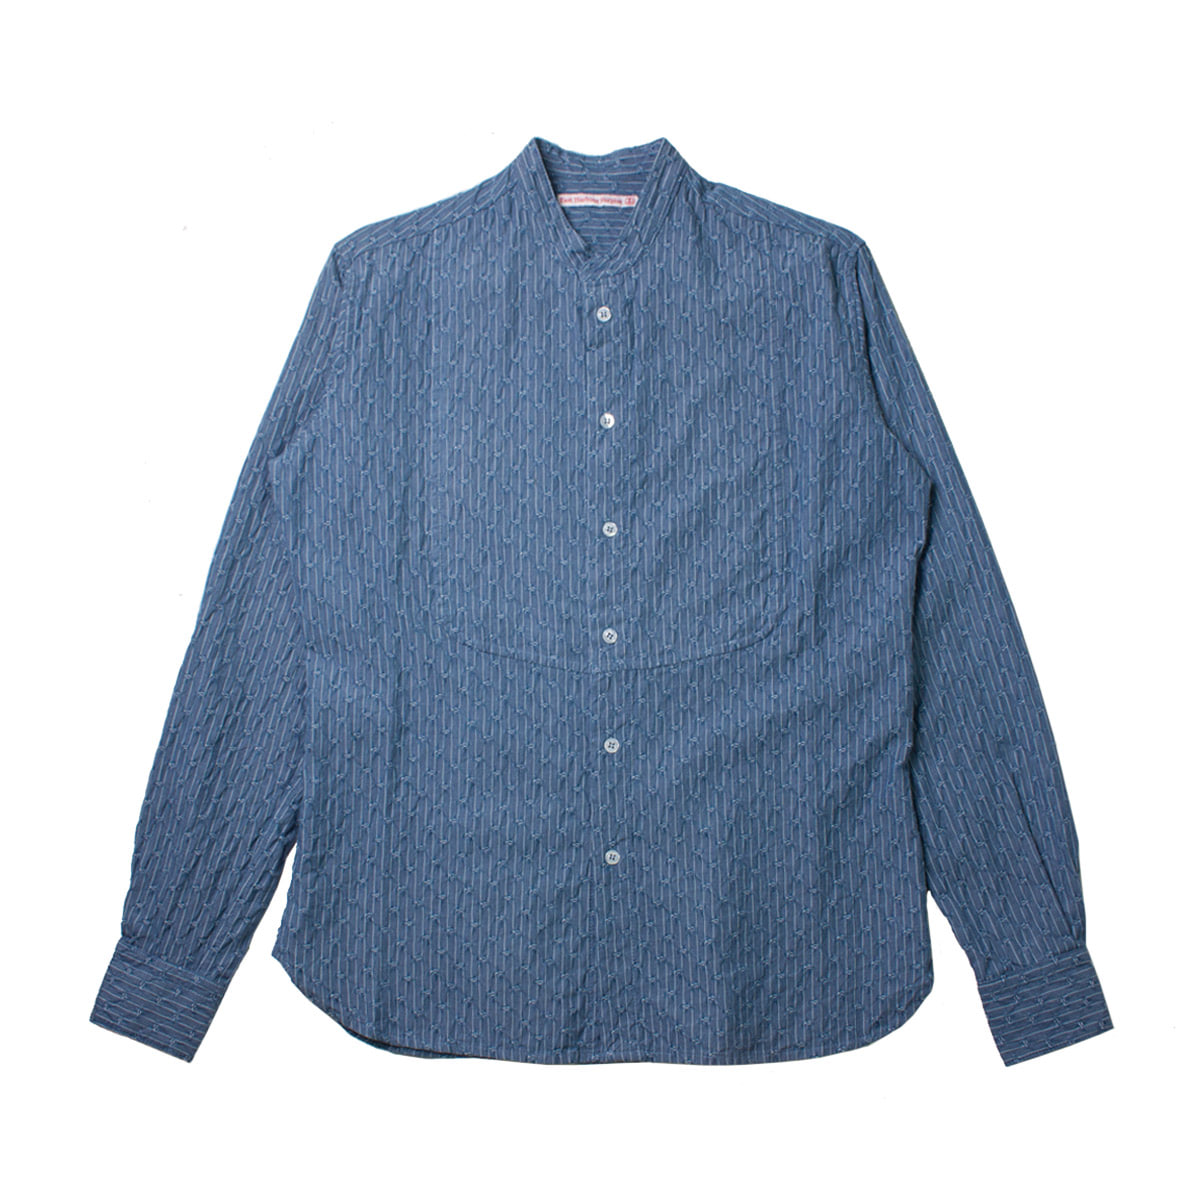 [EAST HARBOUR SURPLUS] JAQUARD PATTERN MING SHIRT 'BLUE'